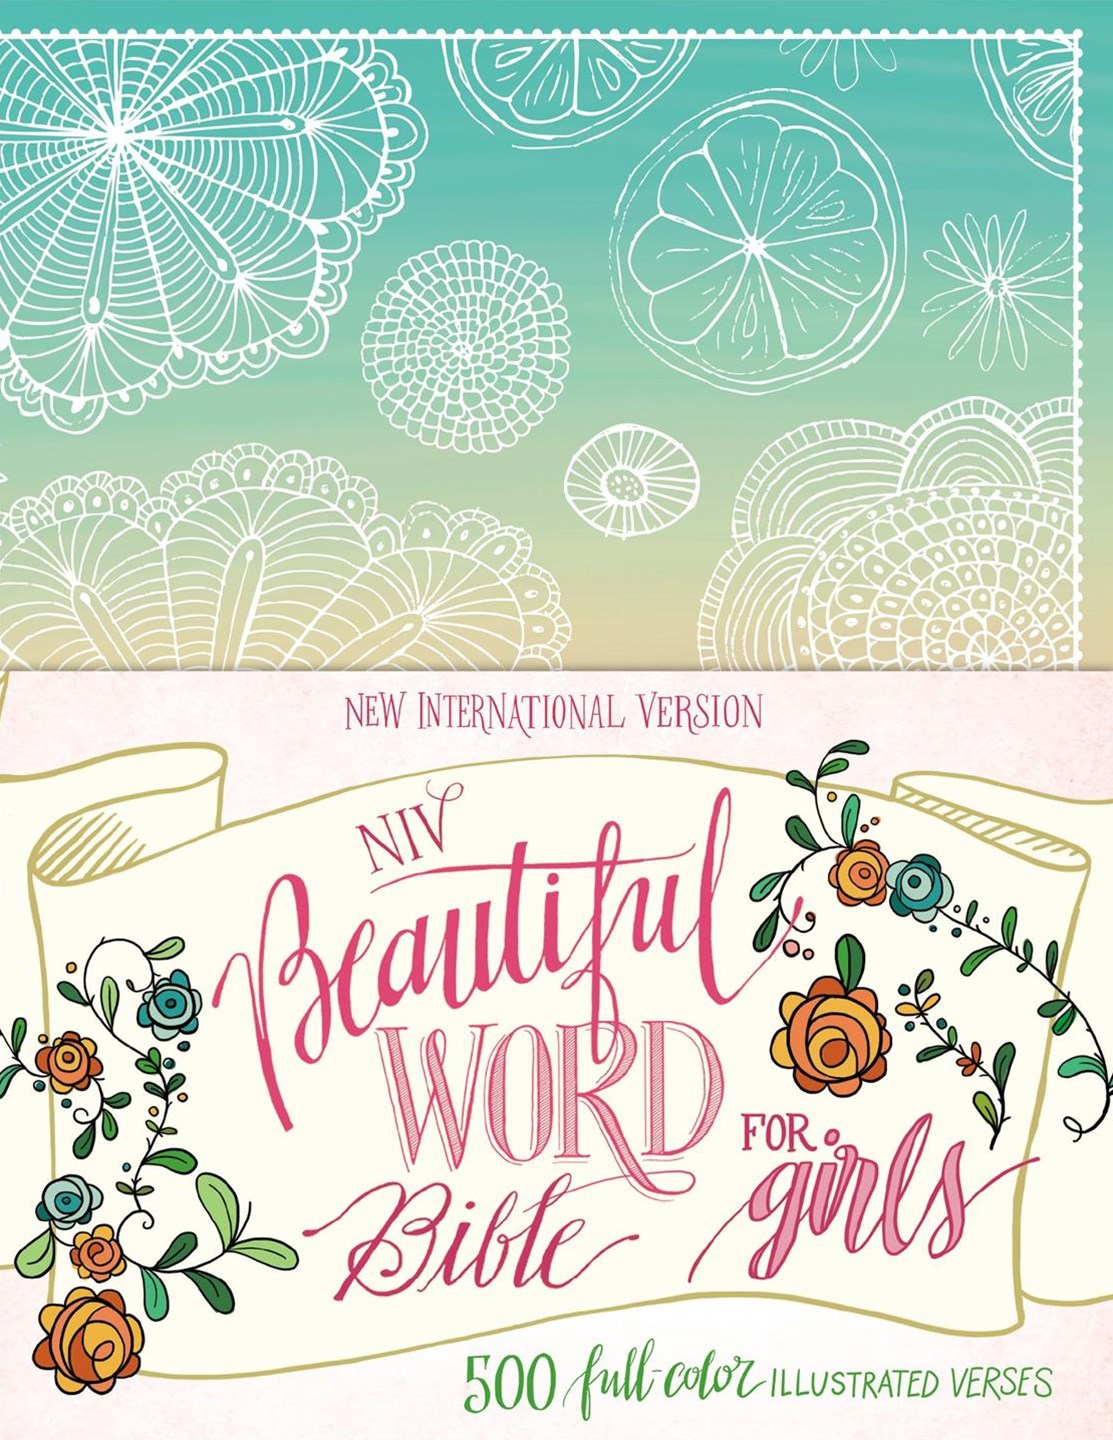 NIV Beautiful Word Bible For Girls [Floral]